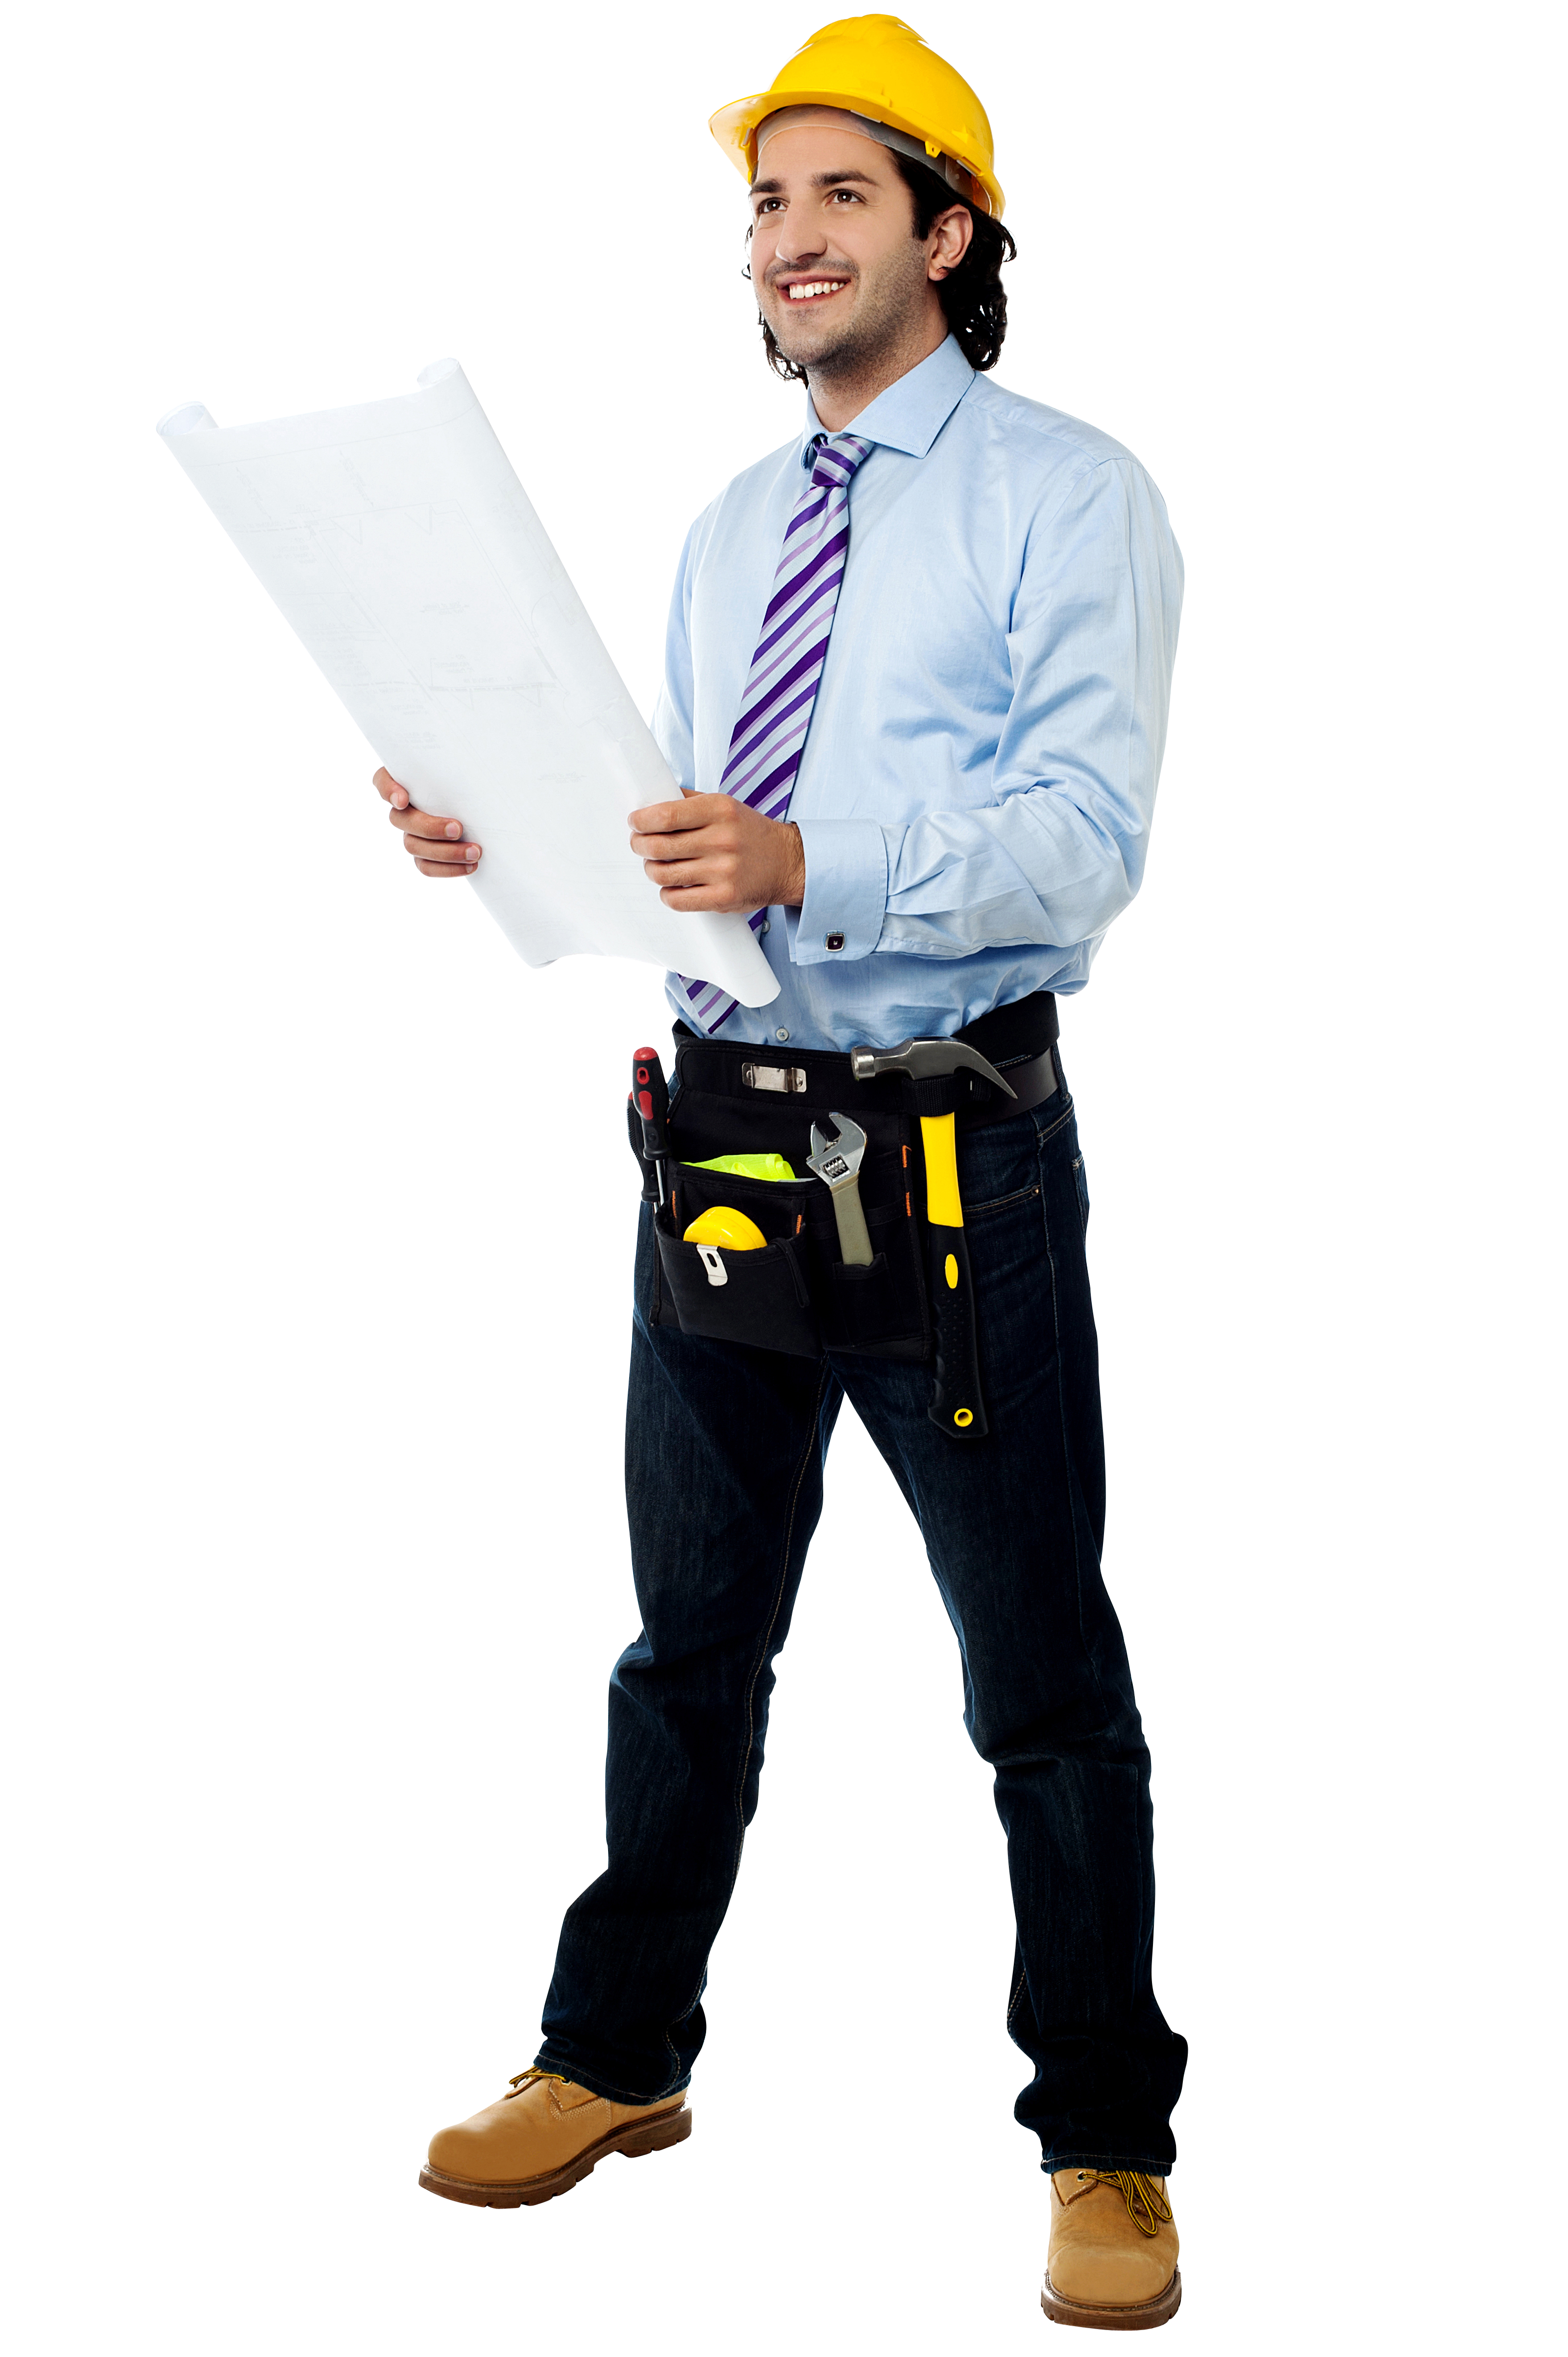 Architects At Work PNG Image